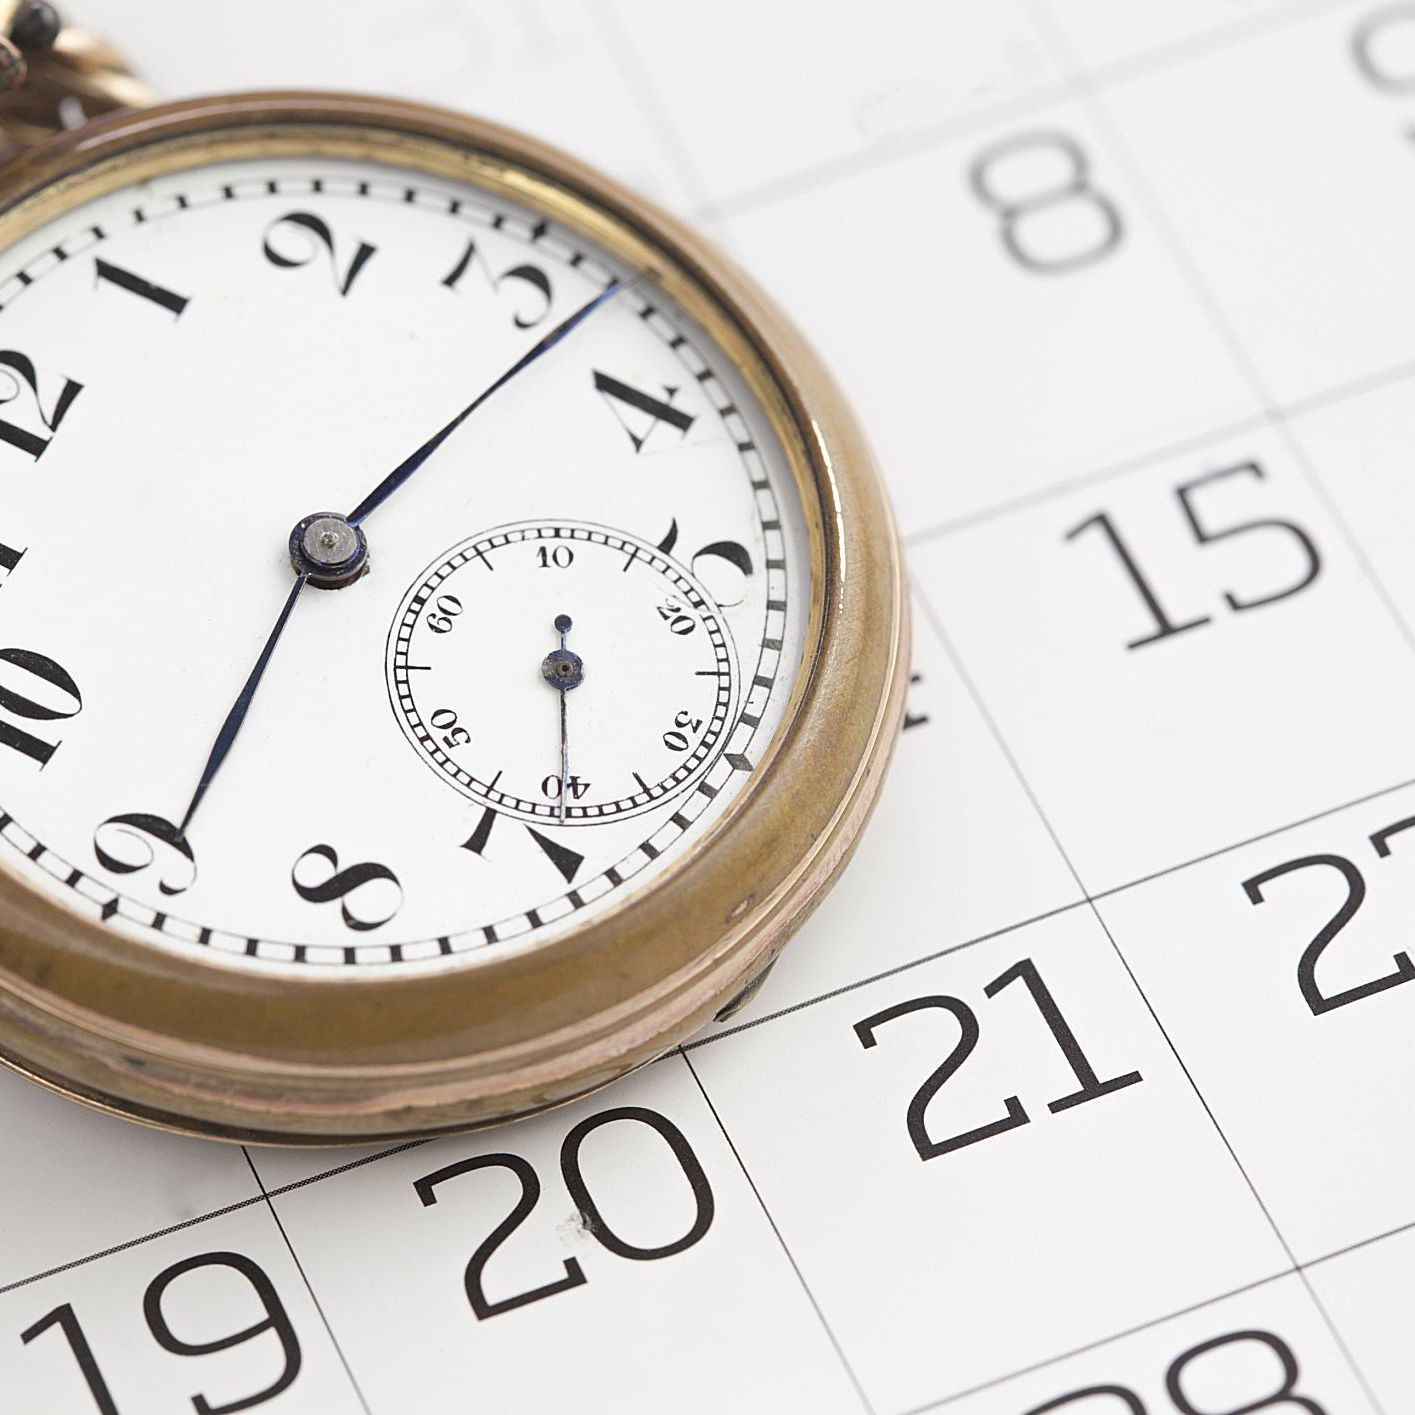 How To Read And Convert Dates In Old Documents With Regard To Online Convert Julian Date To Calendar Date